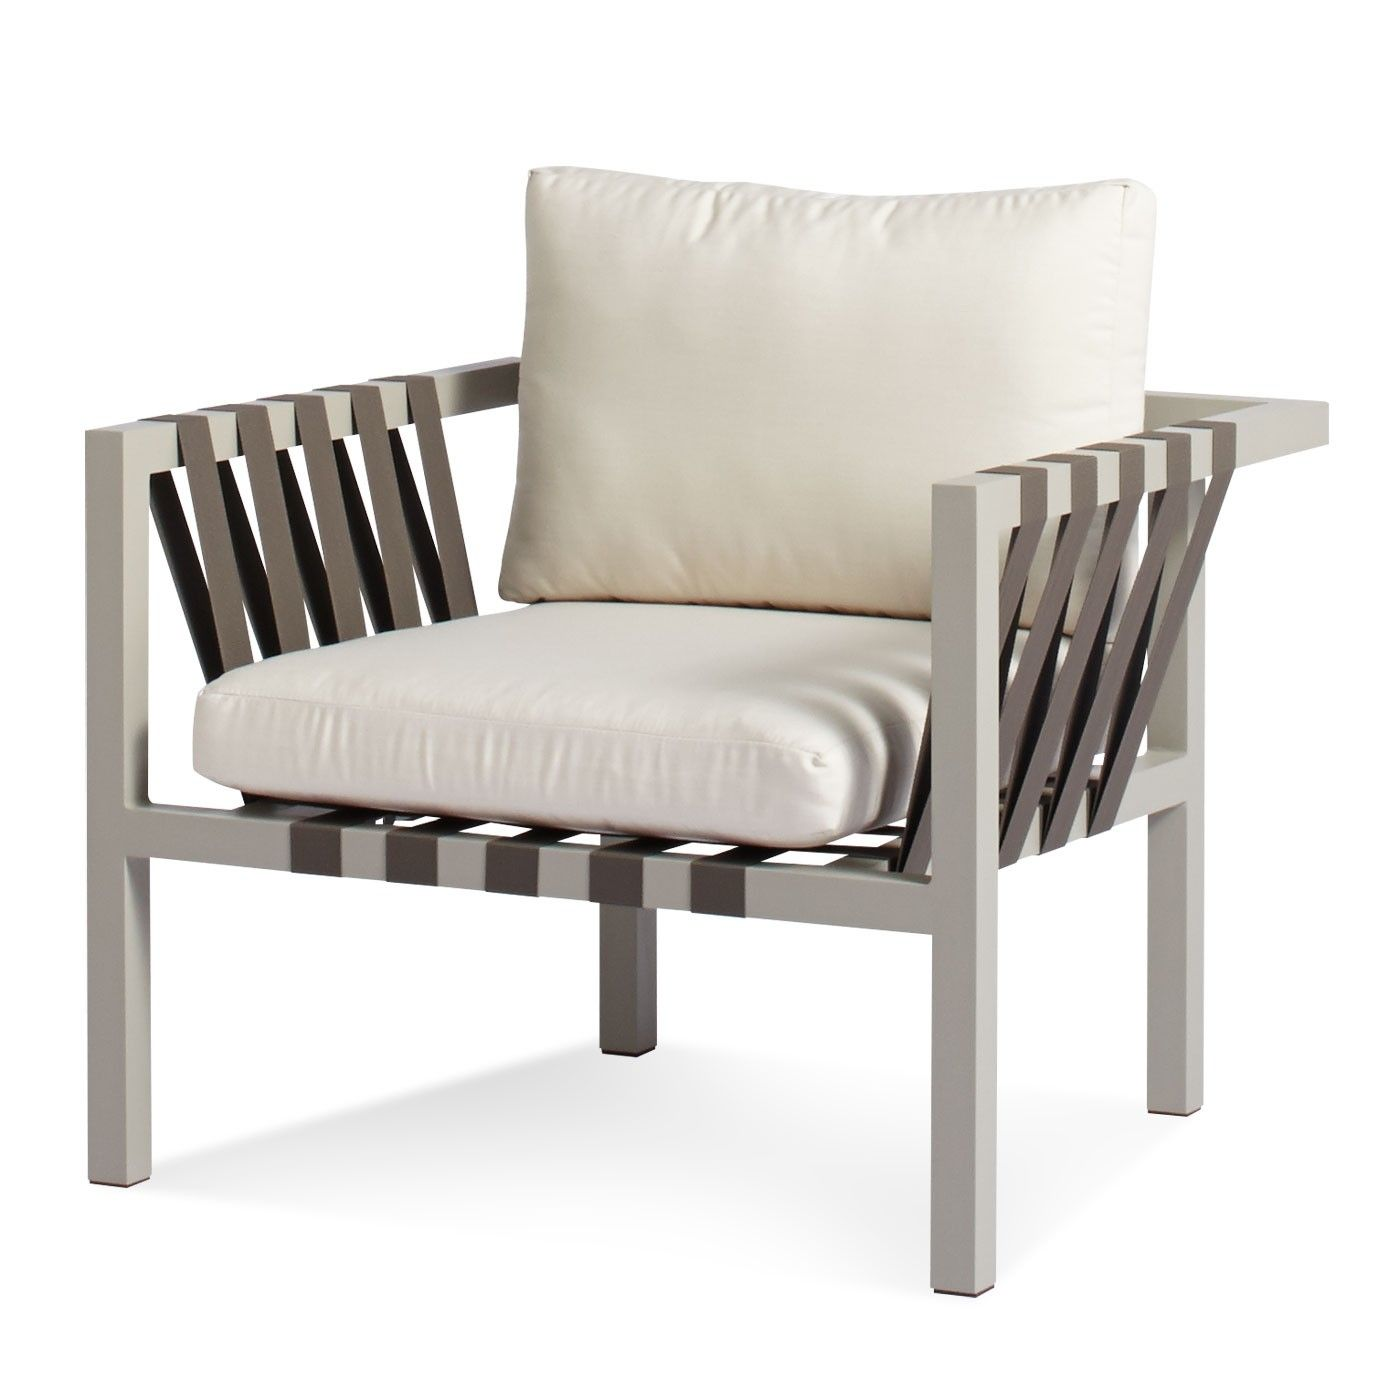 Patio Furniture Oklahoma City Up Urban Jibe Modern Outdoor Lounge Chair Is Also A Kind Of Exterior Door Design Exter Modern Outdoor Furniture Modern Outdoor Chairs Outdoor Chairs